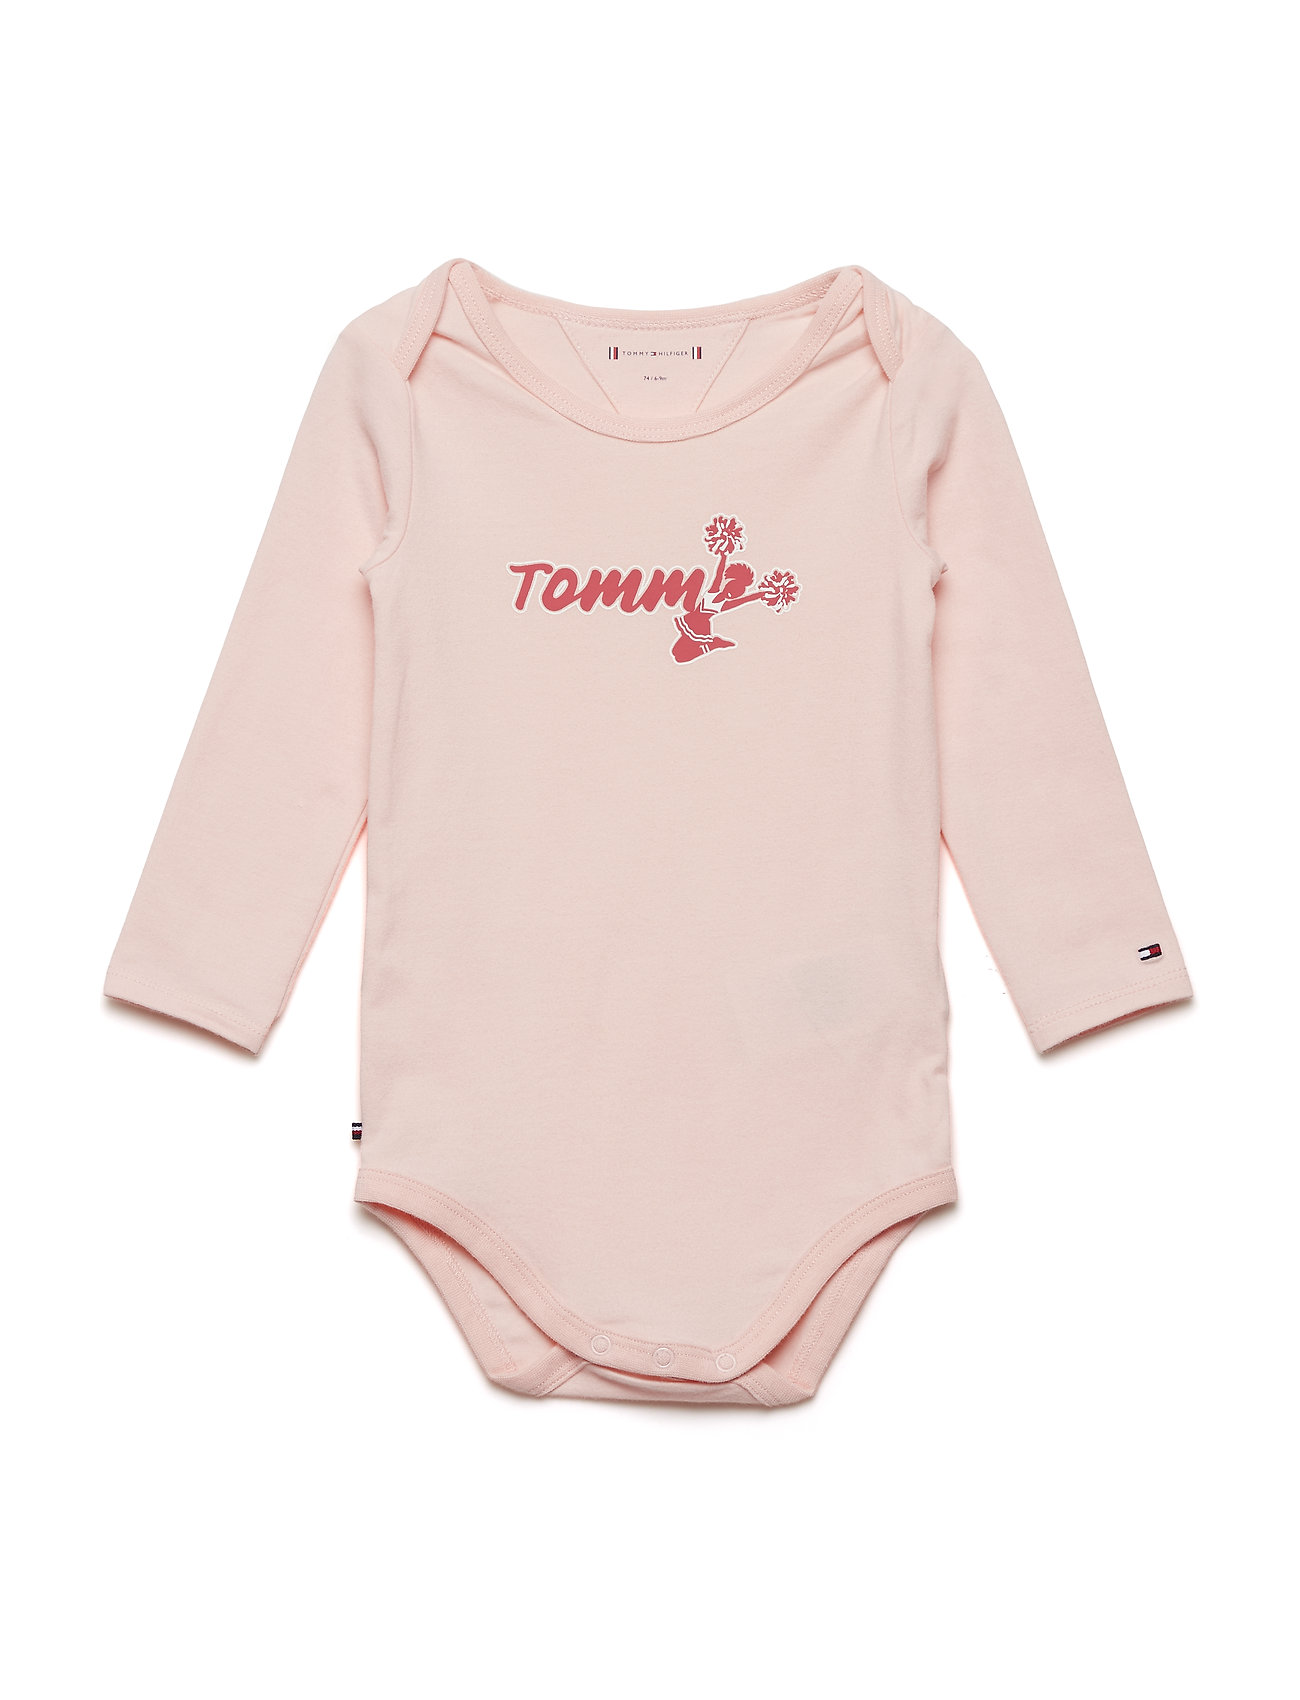 Tommy Hilfiger BABY GRAPHIC BODY